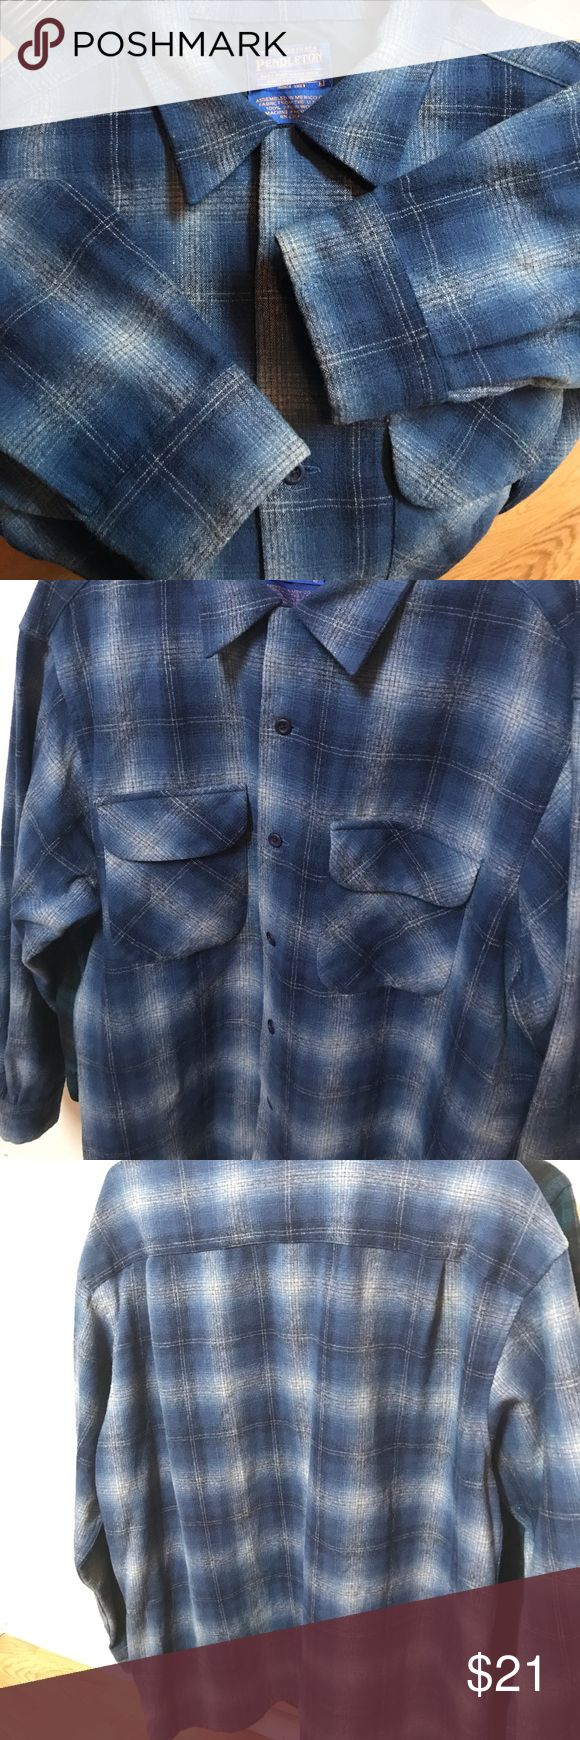 Pendleton original shirt 100% Wool size Large This is a Pendleton shirt that was in extremely Nice condition see pics this shirt had a hole that was fixed (sewn) to close up selling this shirt as is....thats why the price is extremely low its still a great deal i believe. Size large feel free to look at my other shirt i will list all flaws and this is it in this one ask questions? C2C 24' S2S 21' top2bot 29' mid center 2 end sleeve 32 1/2 Pendleton Shirts Casual Button Down Shirts